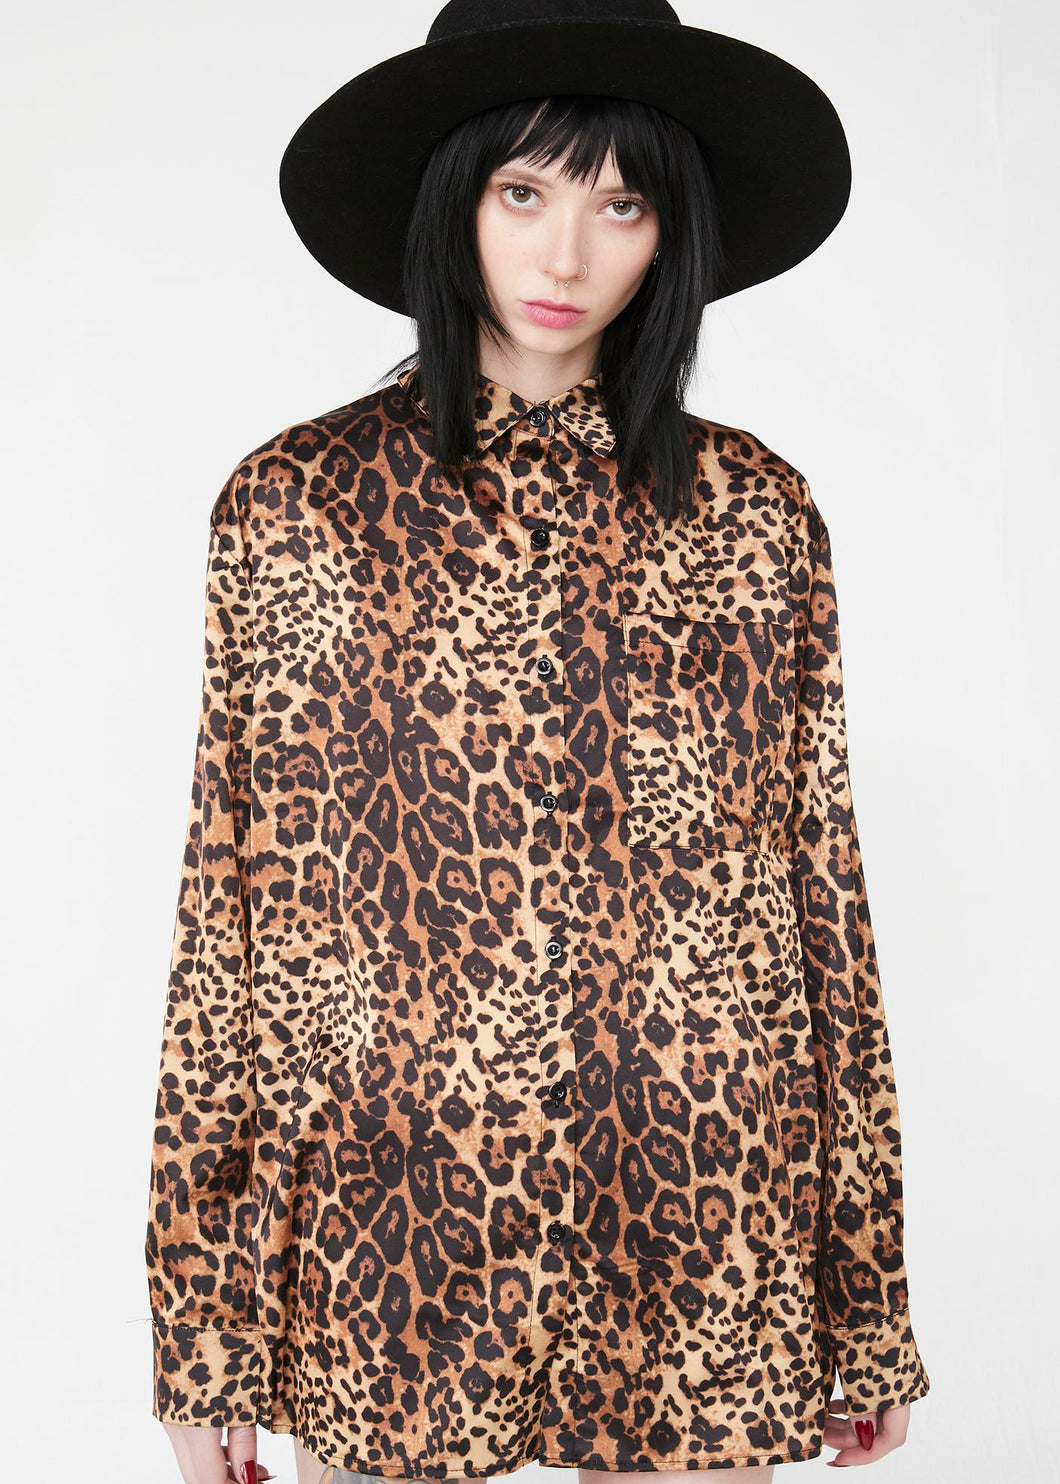 Def Leopard Inmate Shirt